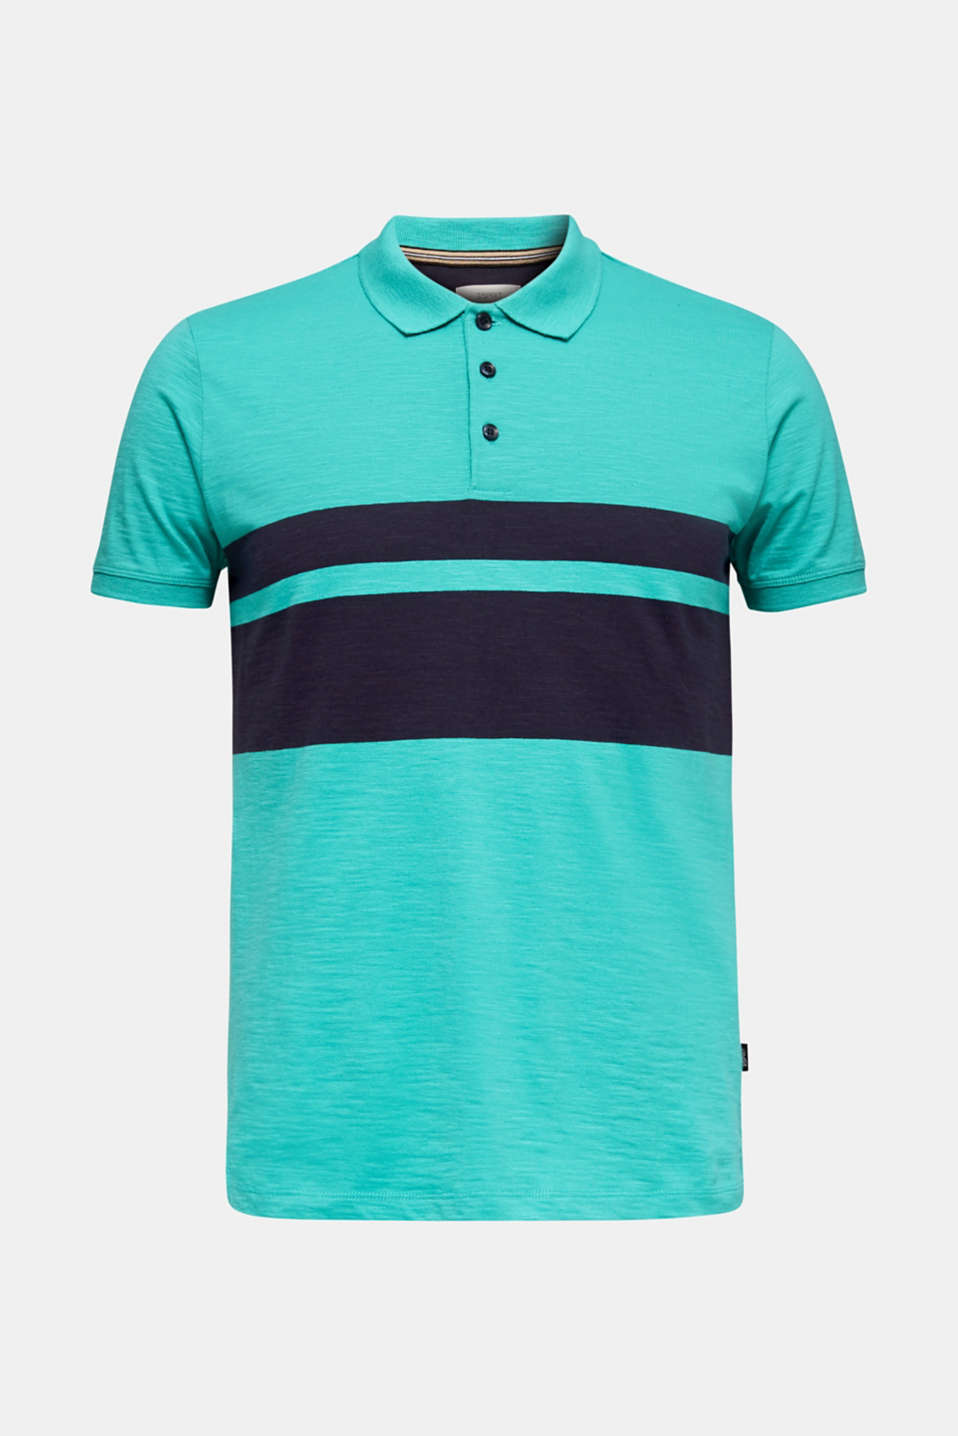 Jersey polo shirt, organic cotton, LIGHT TURQUOISE 3, detail image number 5